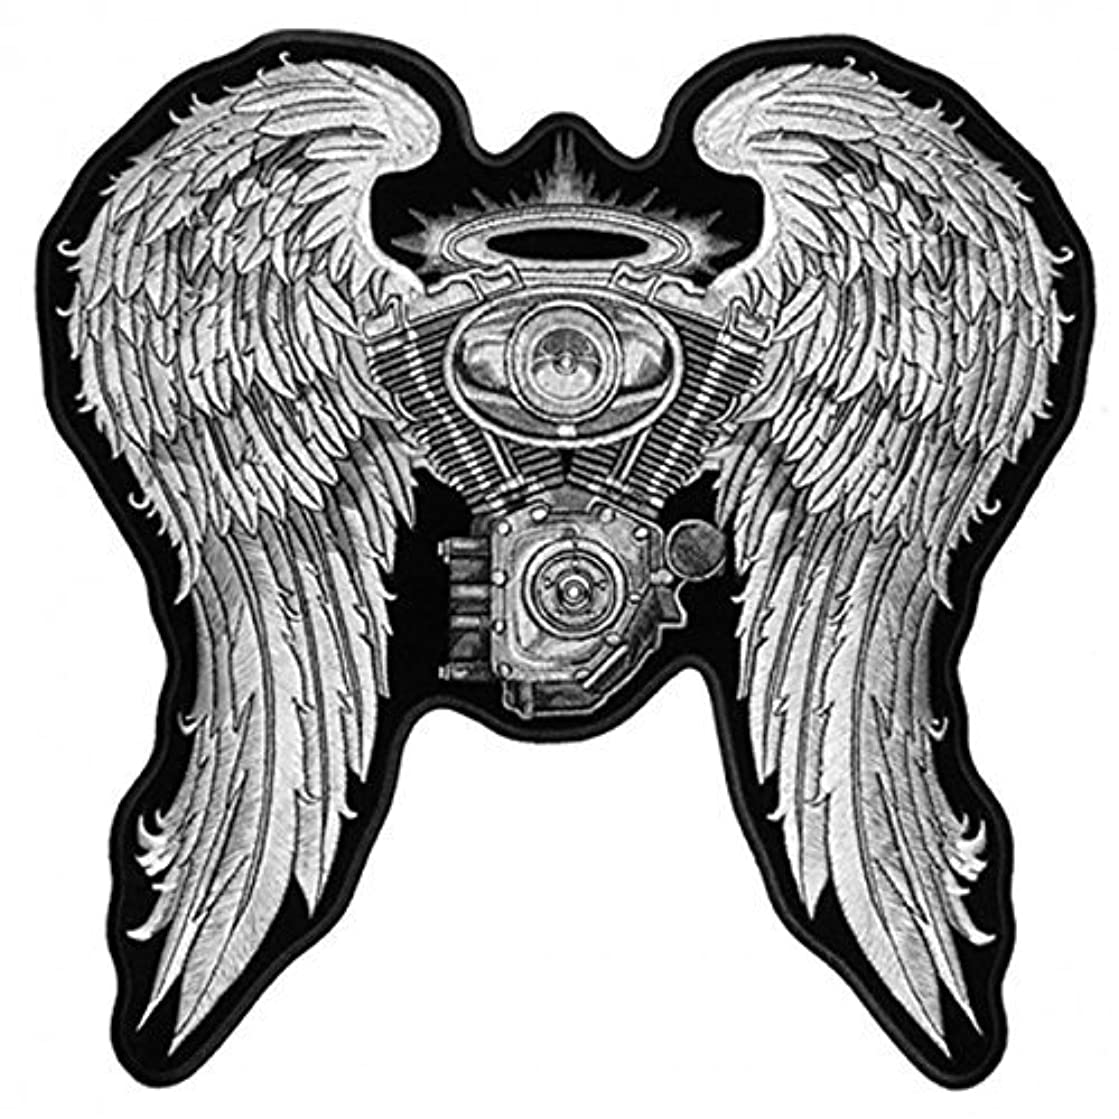 Hot Leathers, LADIES ASPHALT ANGEL, High Thread Embroidered Iron-On / Saw-On Rayon BIKER PATCH - 10